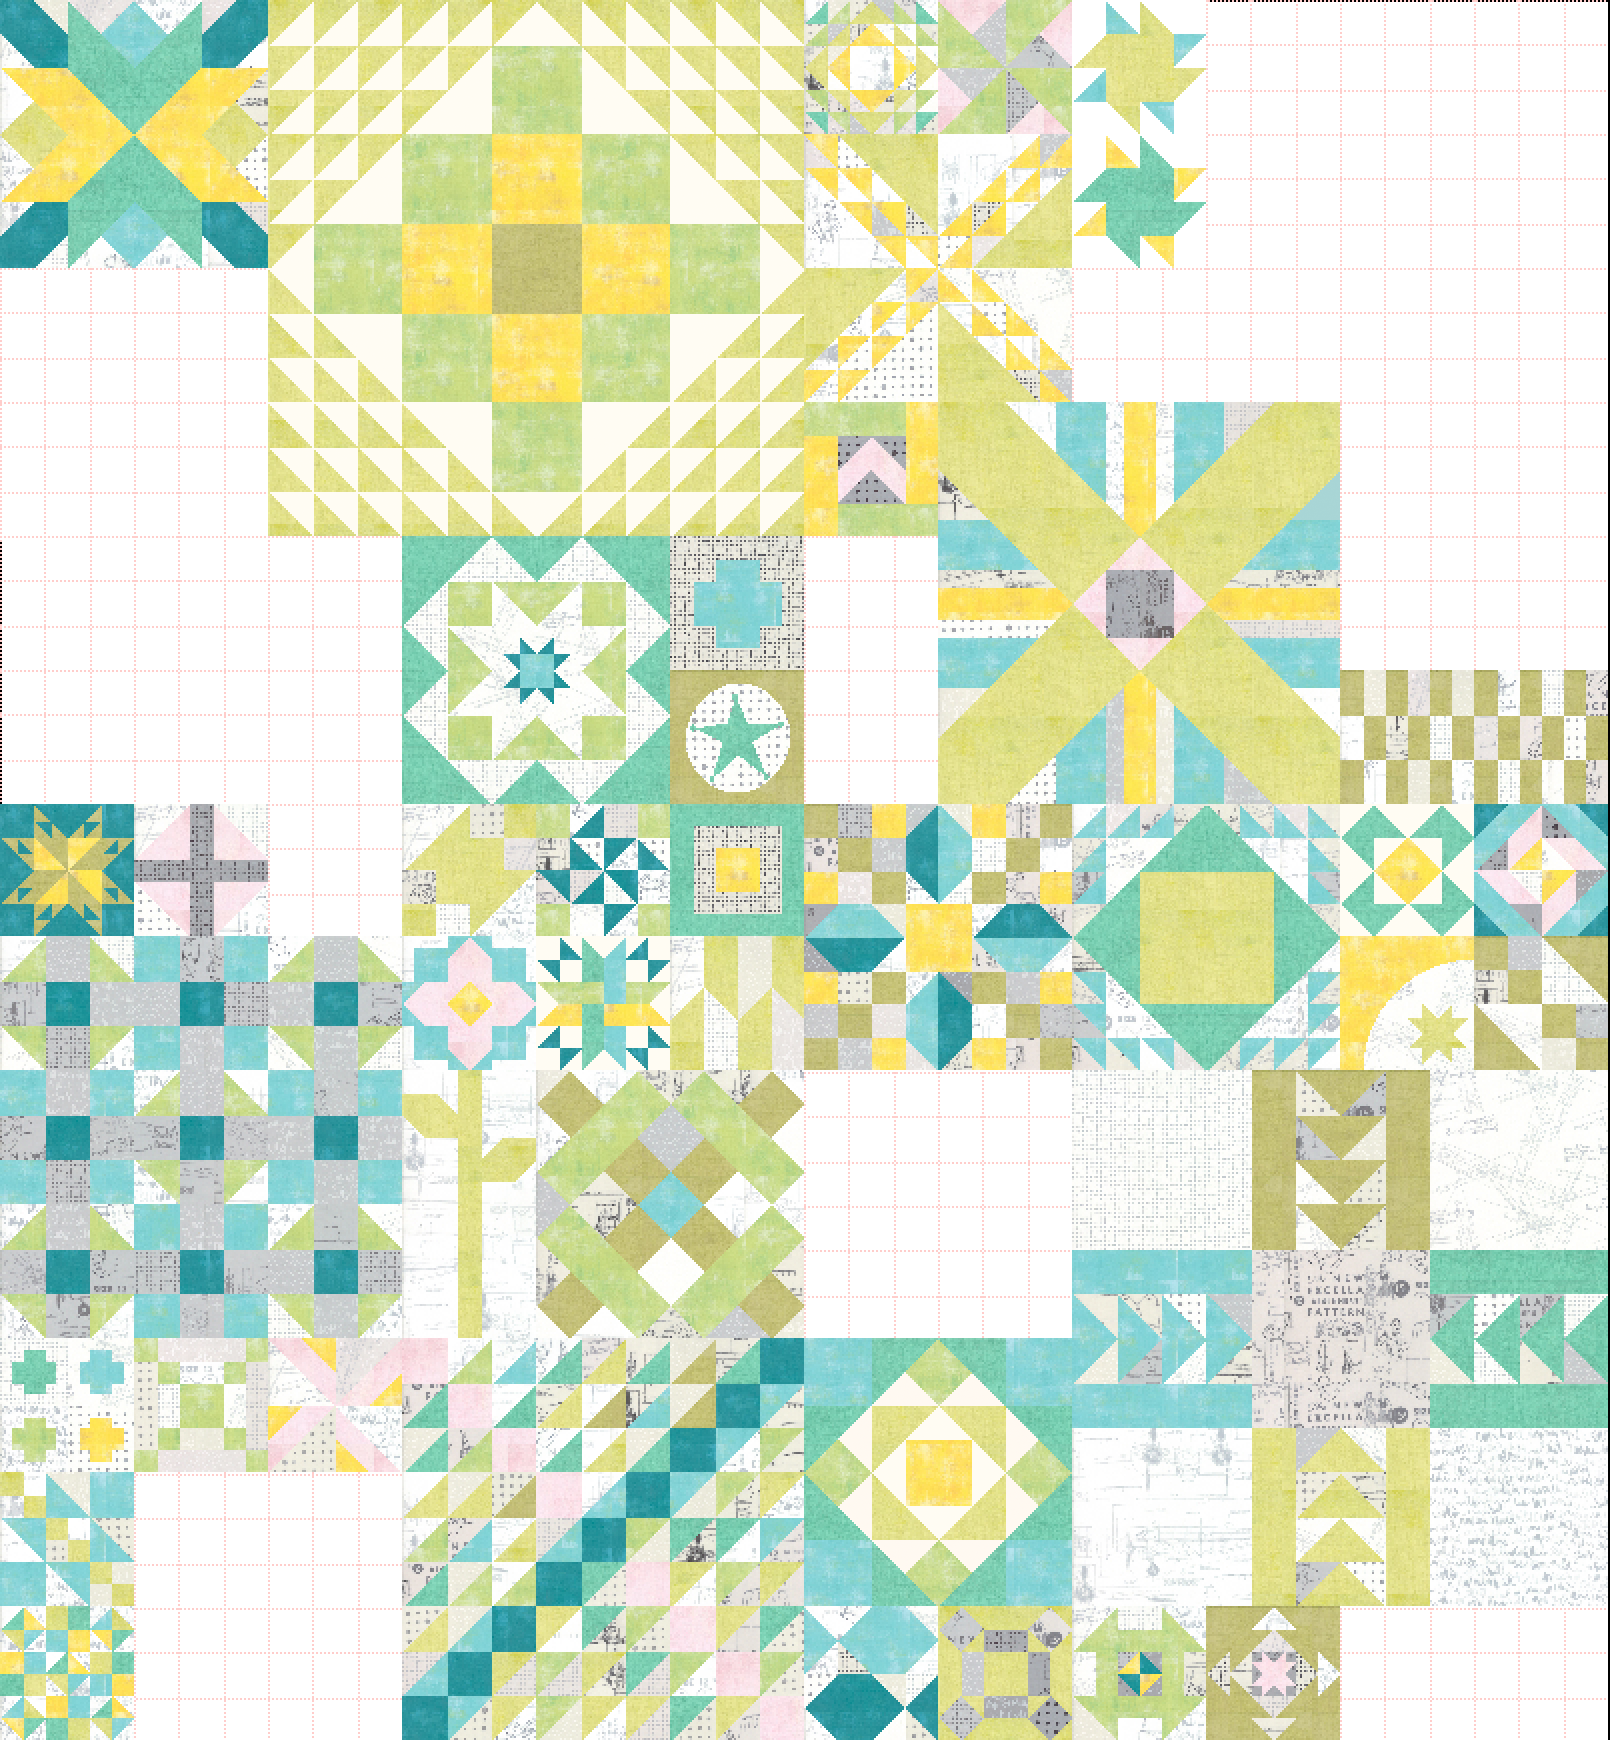 …and this is how my final layout will come together - (…just in case you are curious, haha)